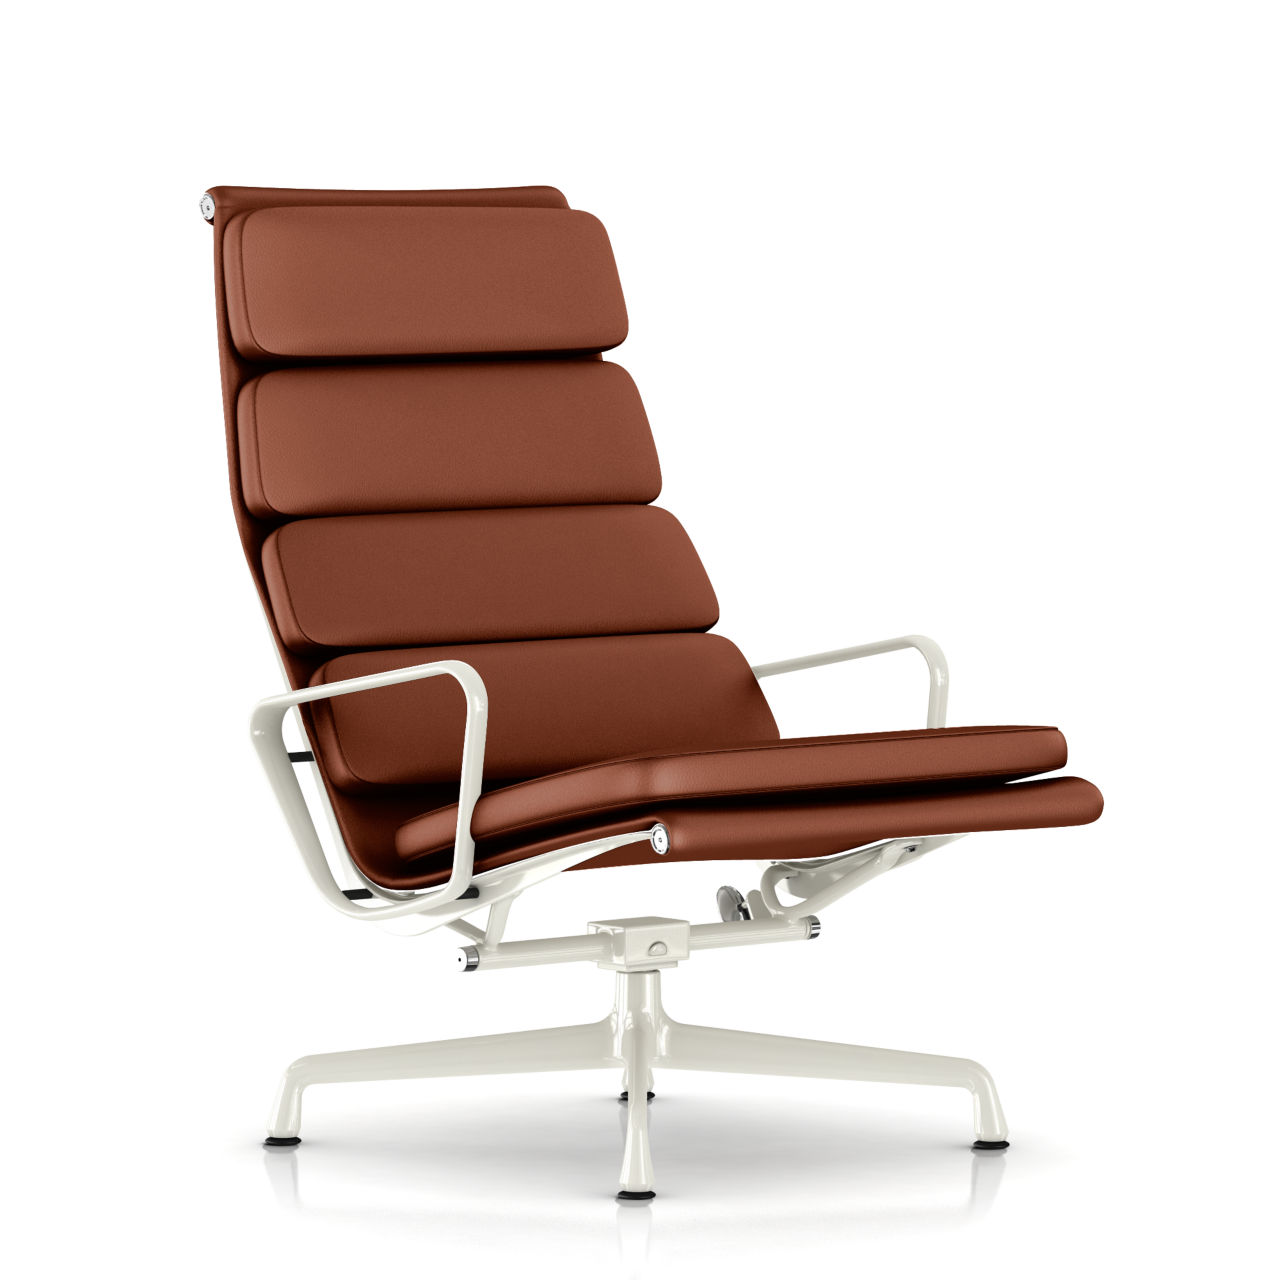 Eames Soft Pad Lounge Chair in Cobblestone MCL Leather by Herman Miller